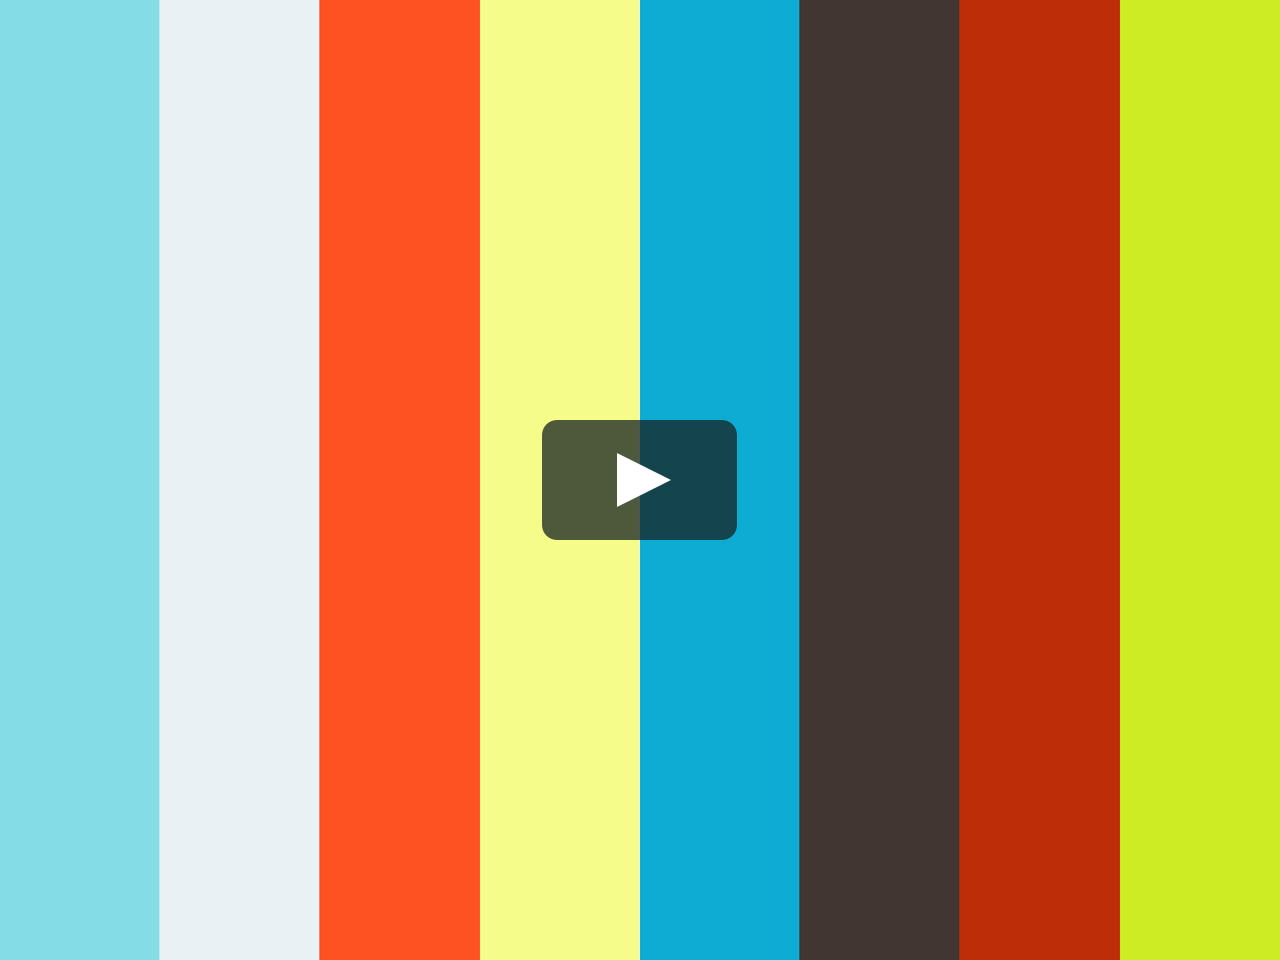 Vimgolf in emacs e003 multiplication table on vimeo gamestrikefo Choice Image